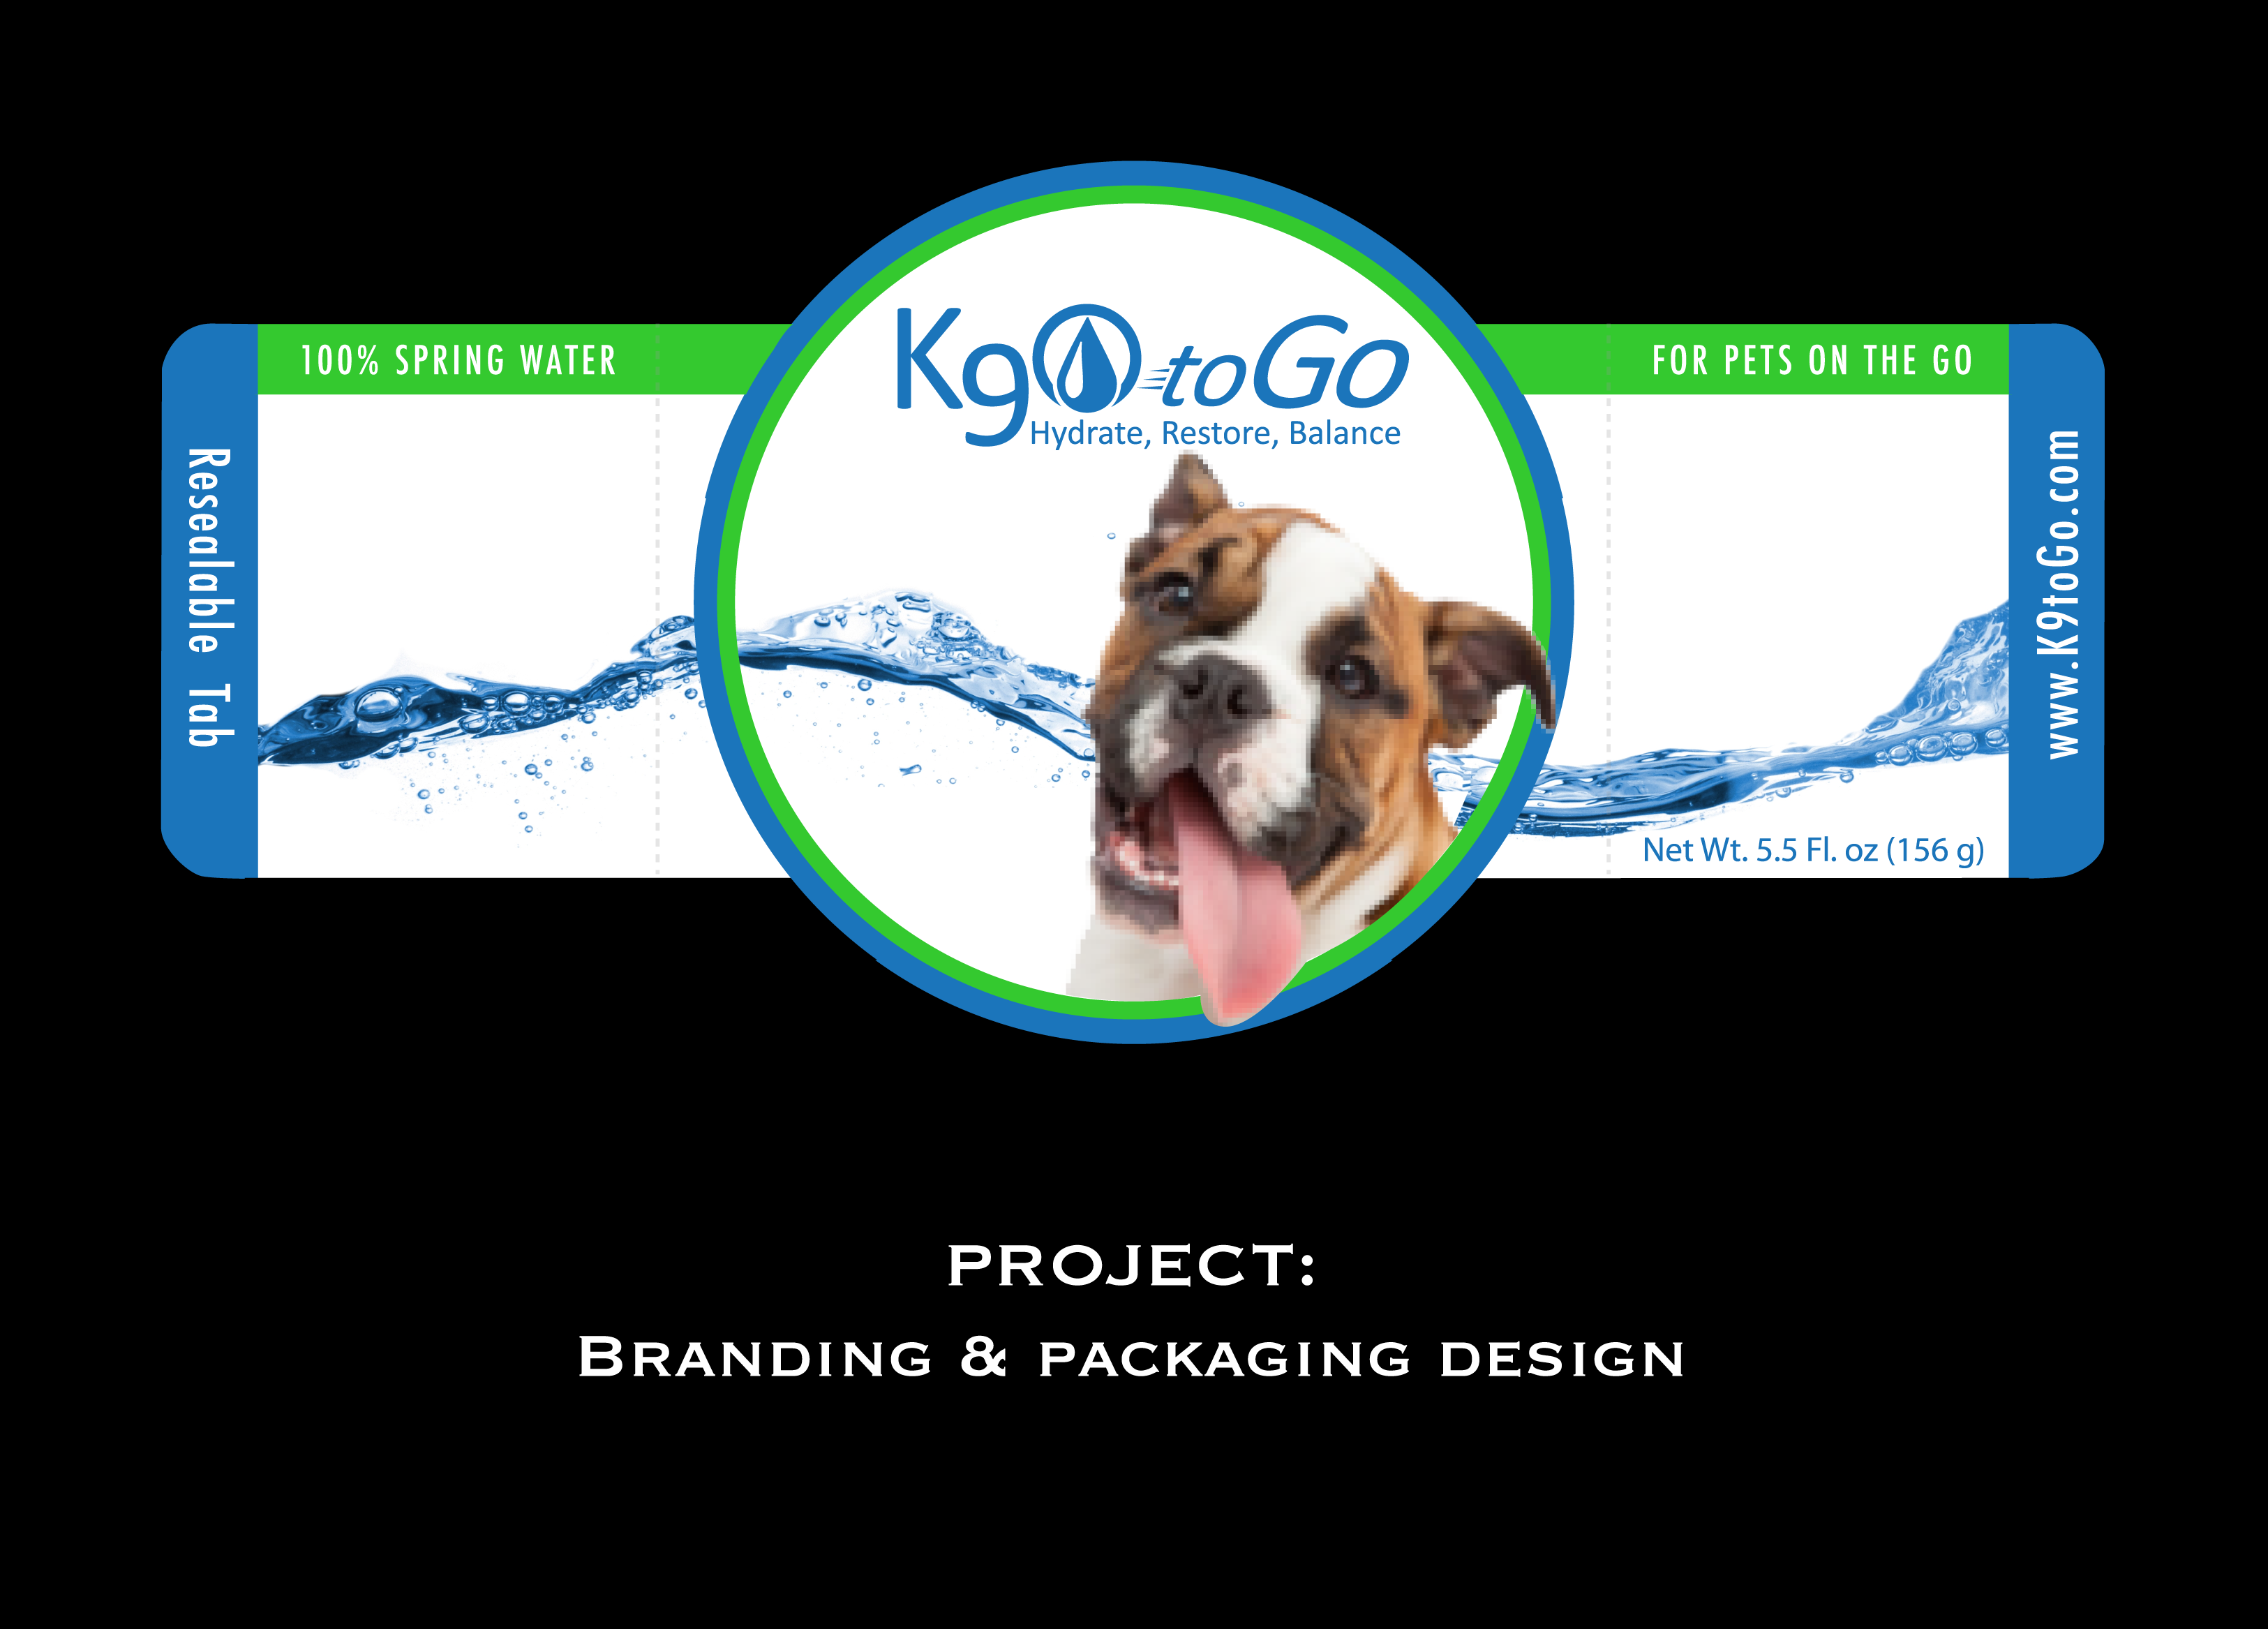 K90 to Go Packaging